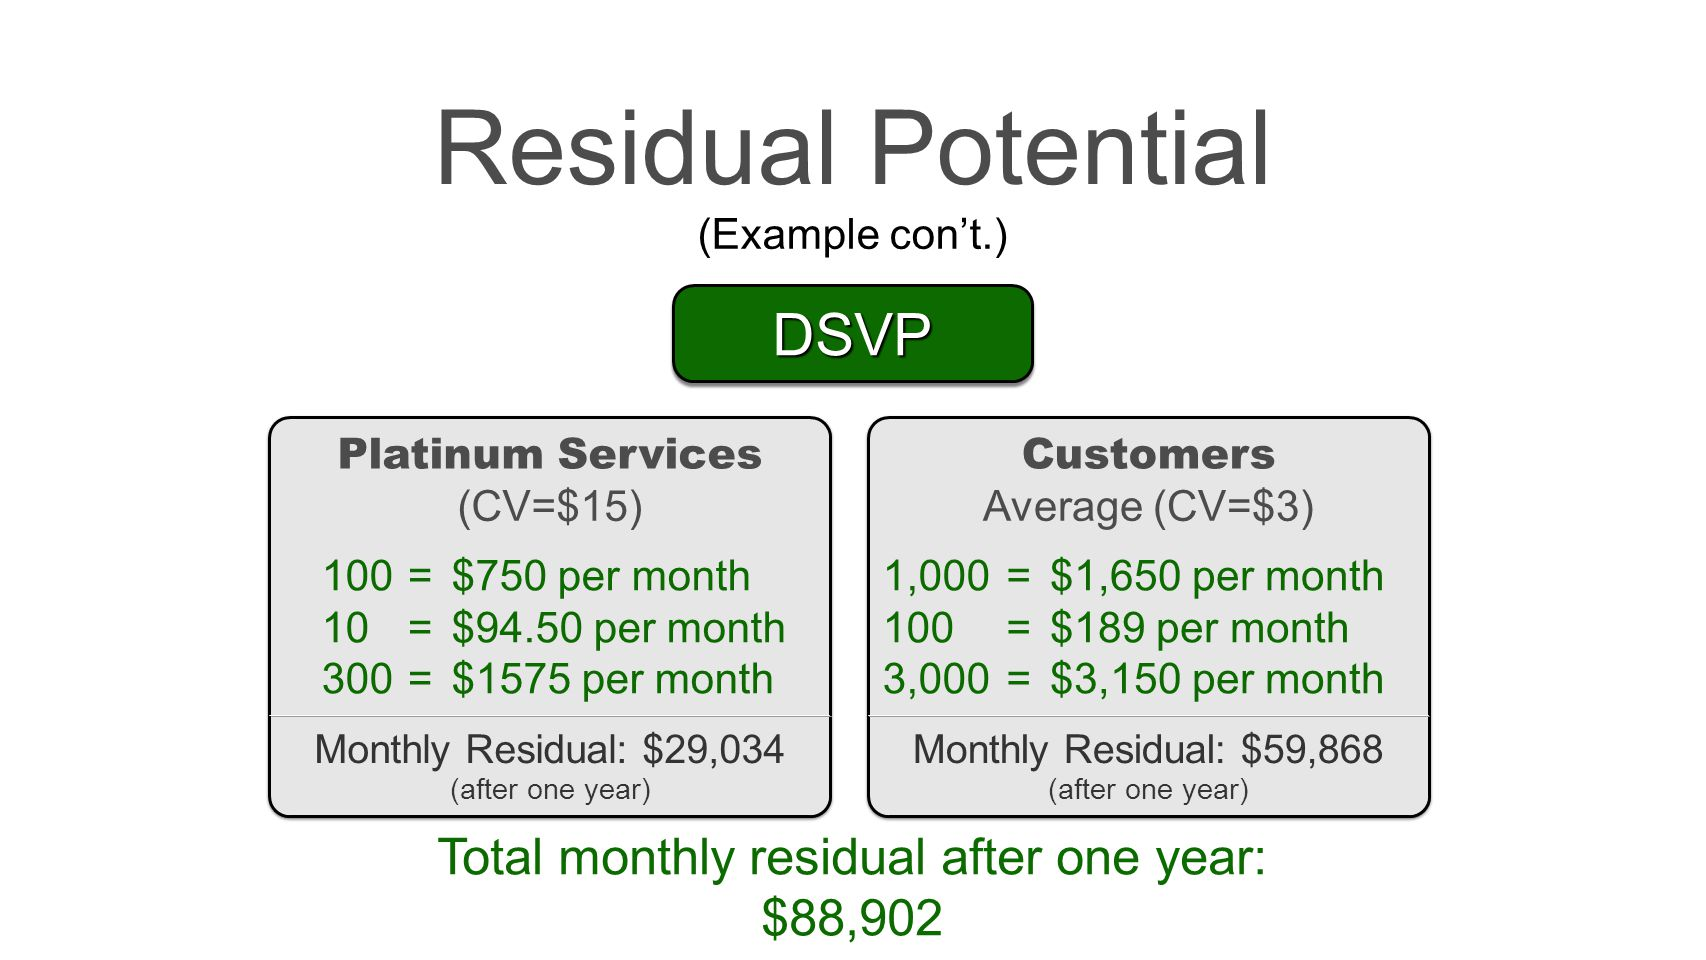 Total monthly residual after one year: $88,902